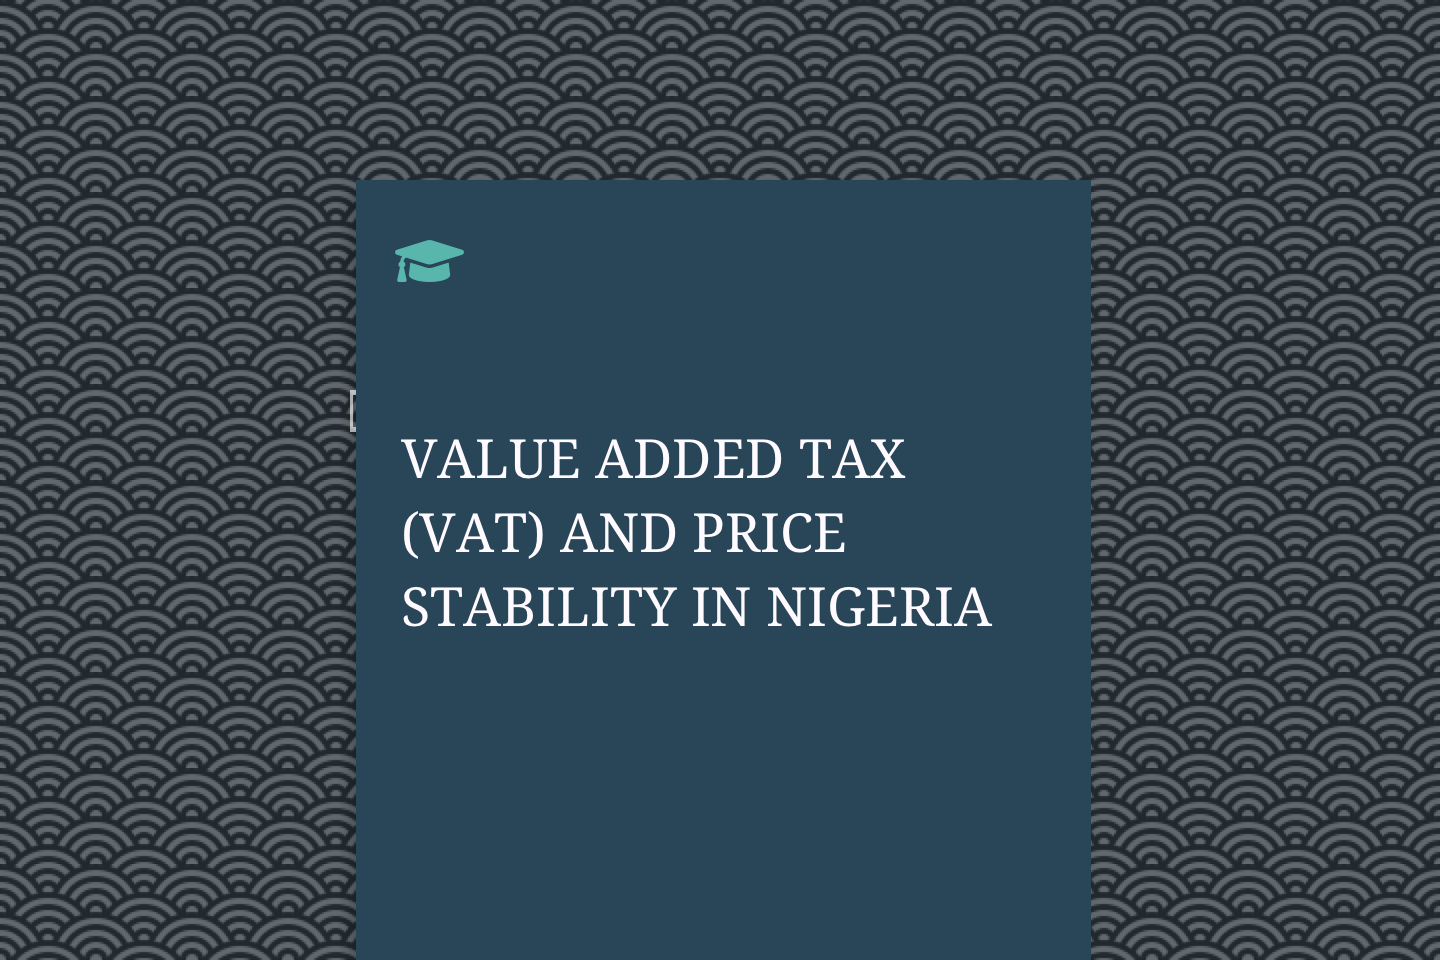 VALUE ADDED TAX (VAT) AND PRICE STABILITY IN NIGERIA